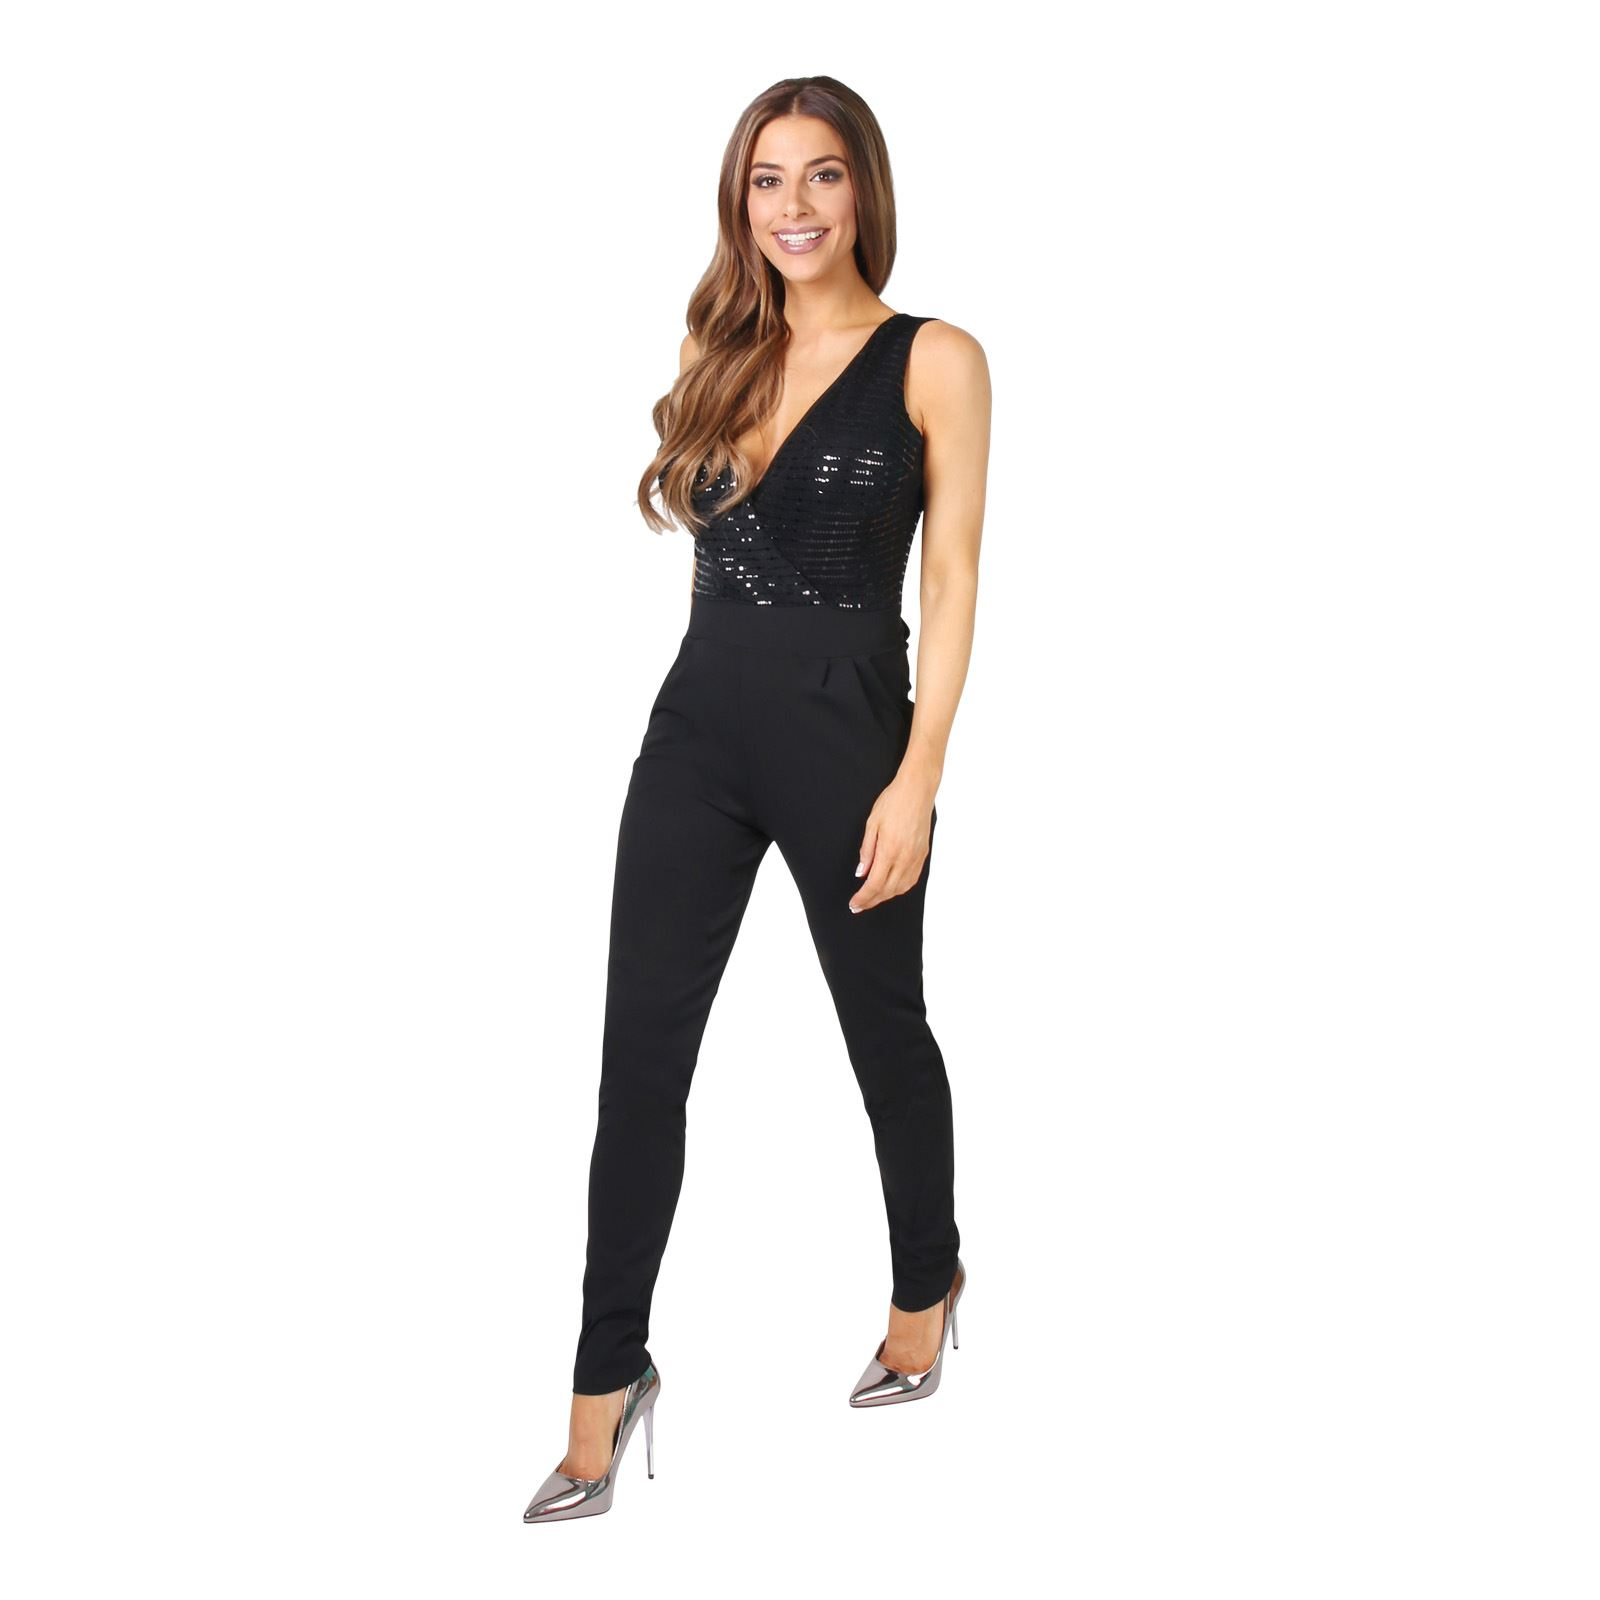 Jump right in and start browsing the hottest styles of jumpsuits for women. We have a wide selection of jumpsuits at great prices and we offer free shipping on all orders over $